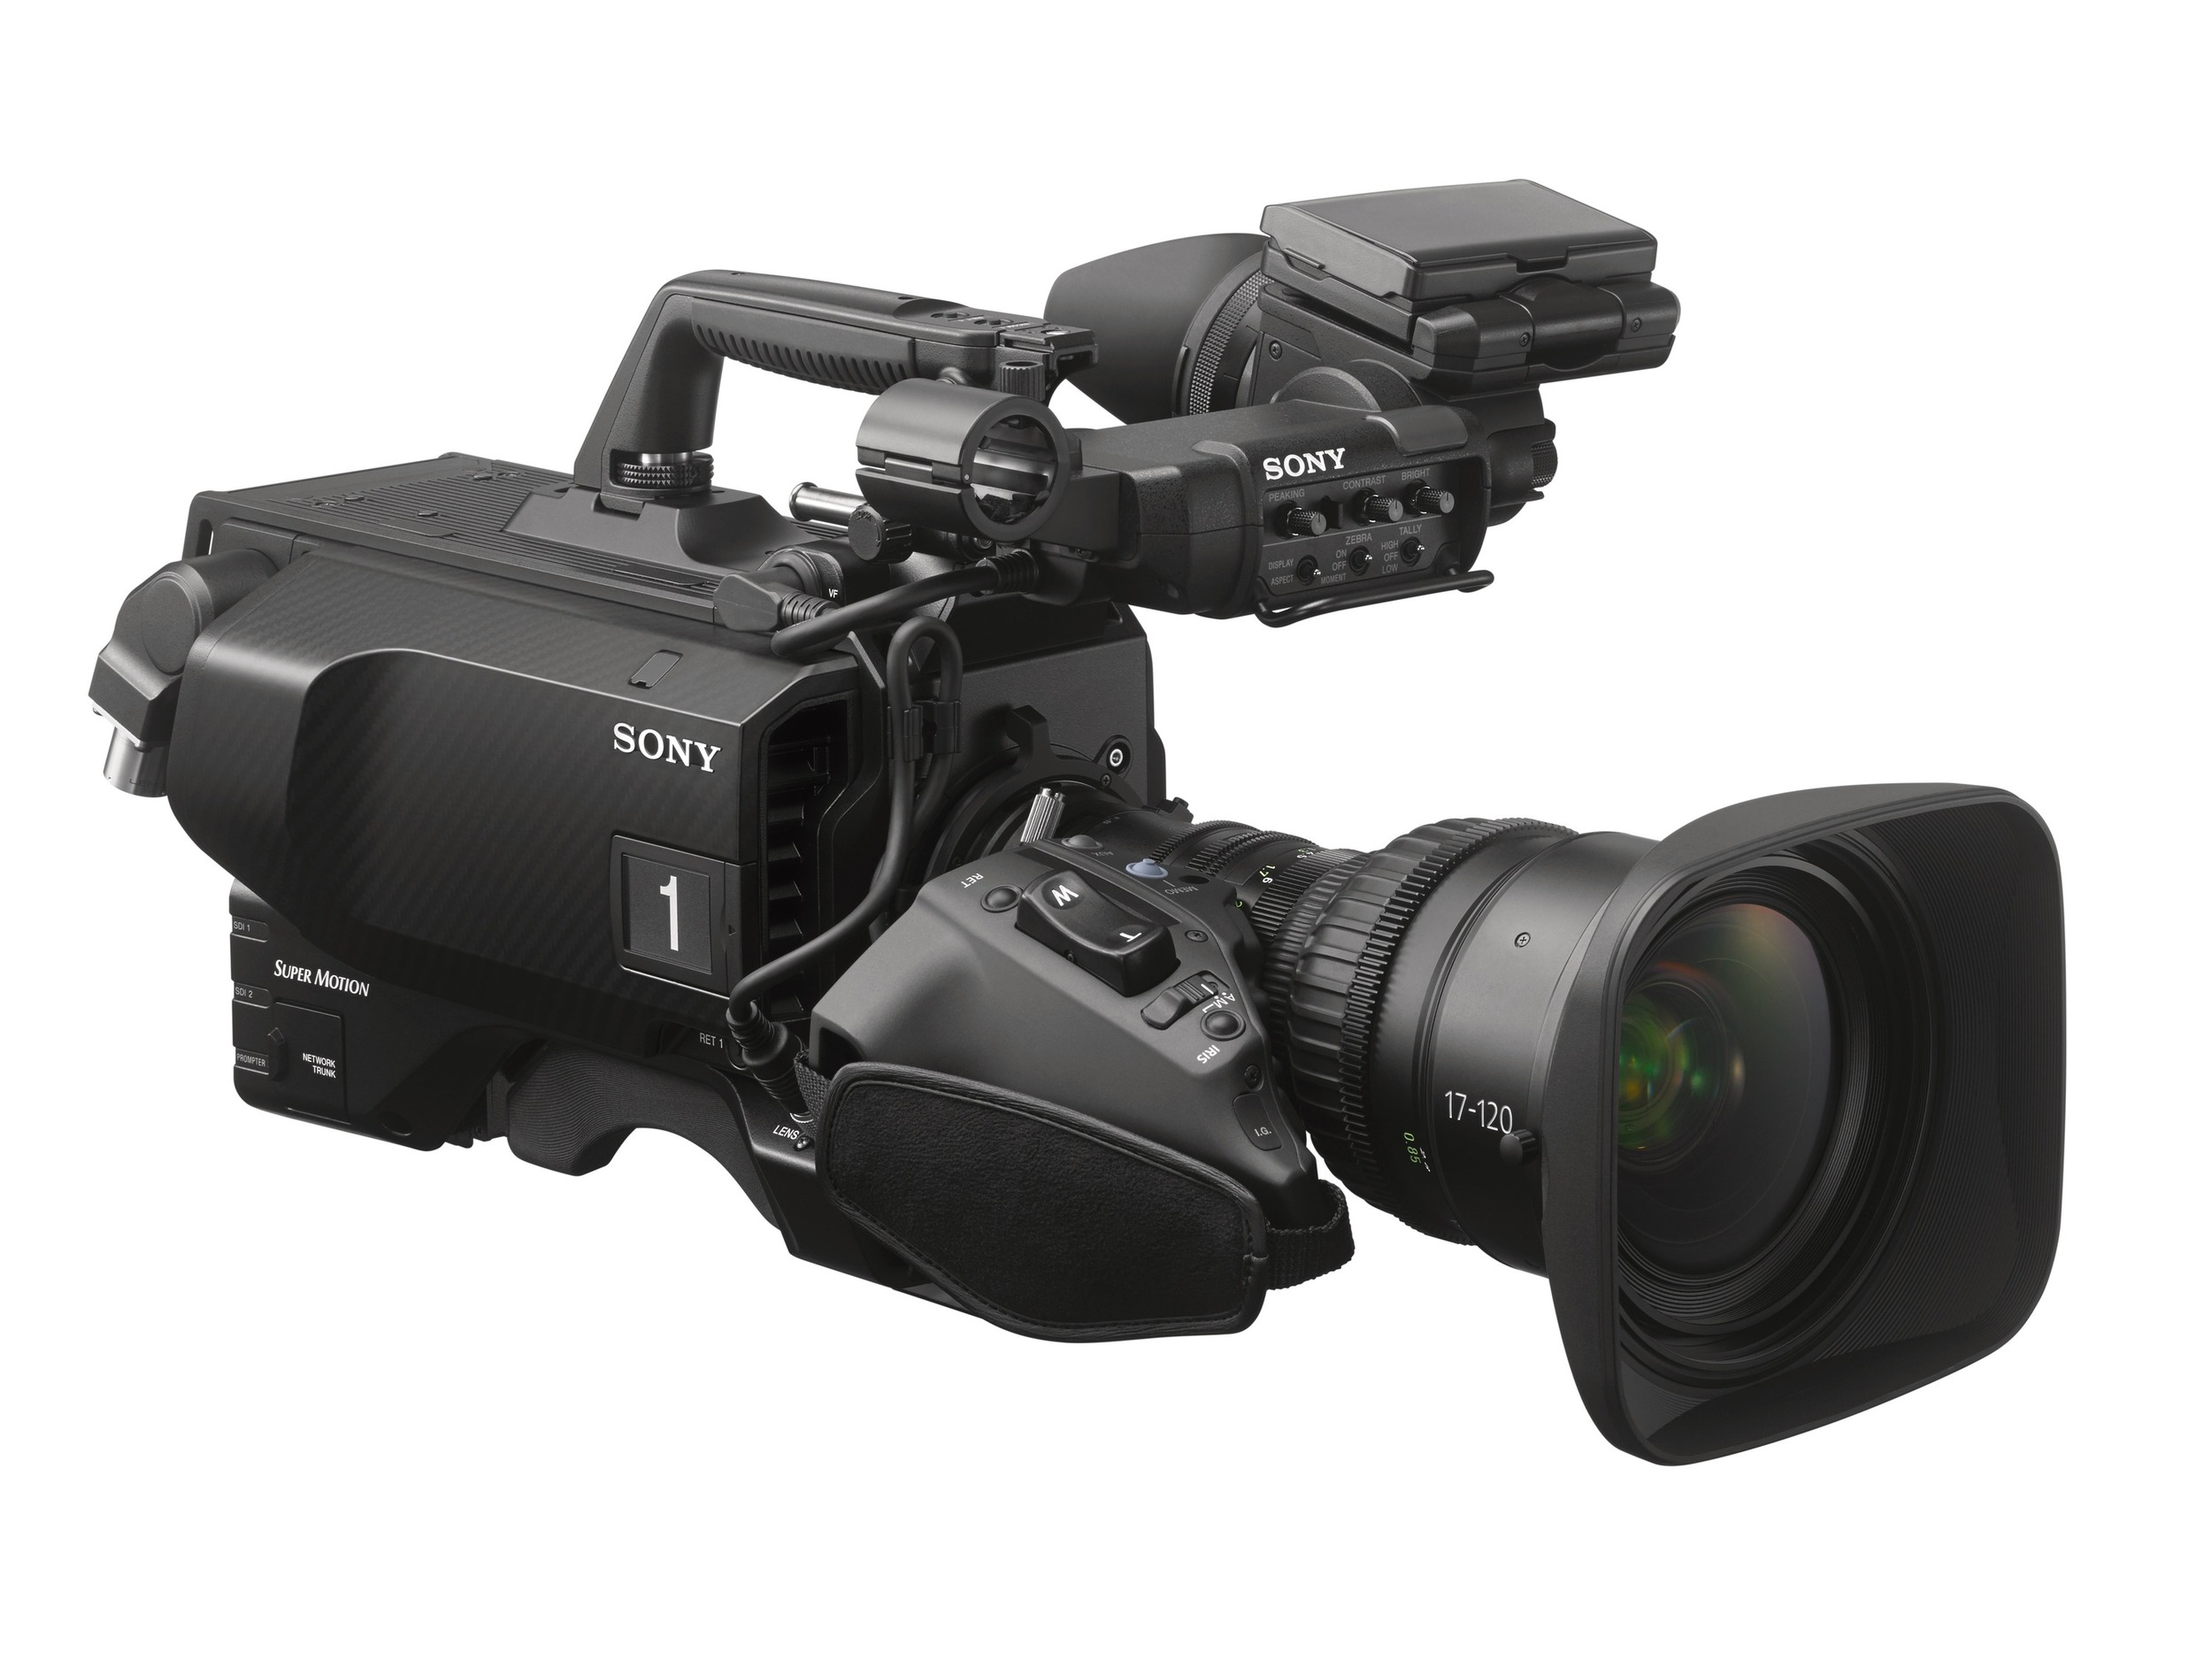 The new HDC-4800 high frame rate camera with 8X for 4K and 16 for HD. Good news for future Cinealta cameras that could use the same sensor and OLPF.